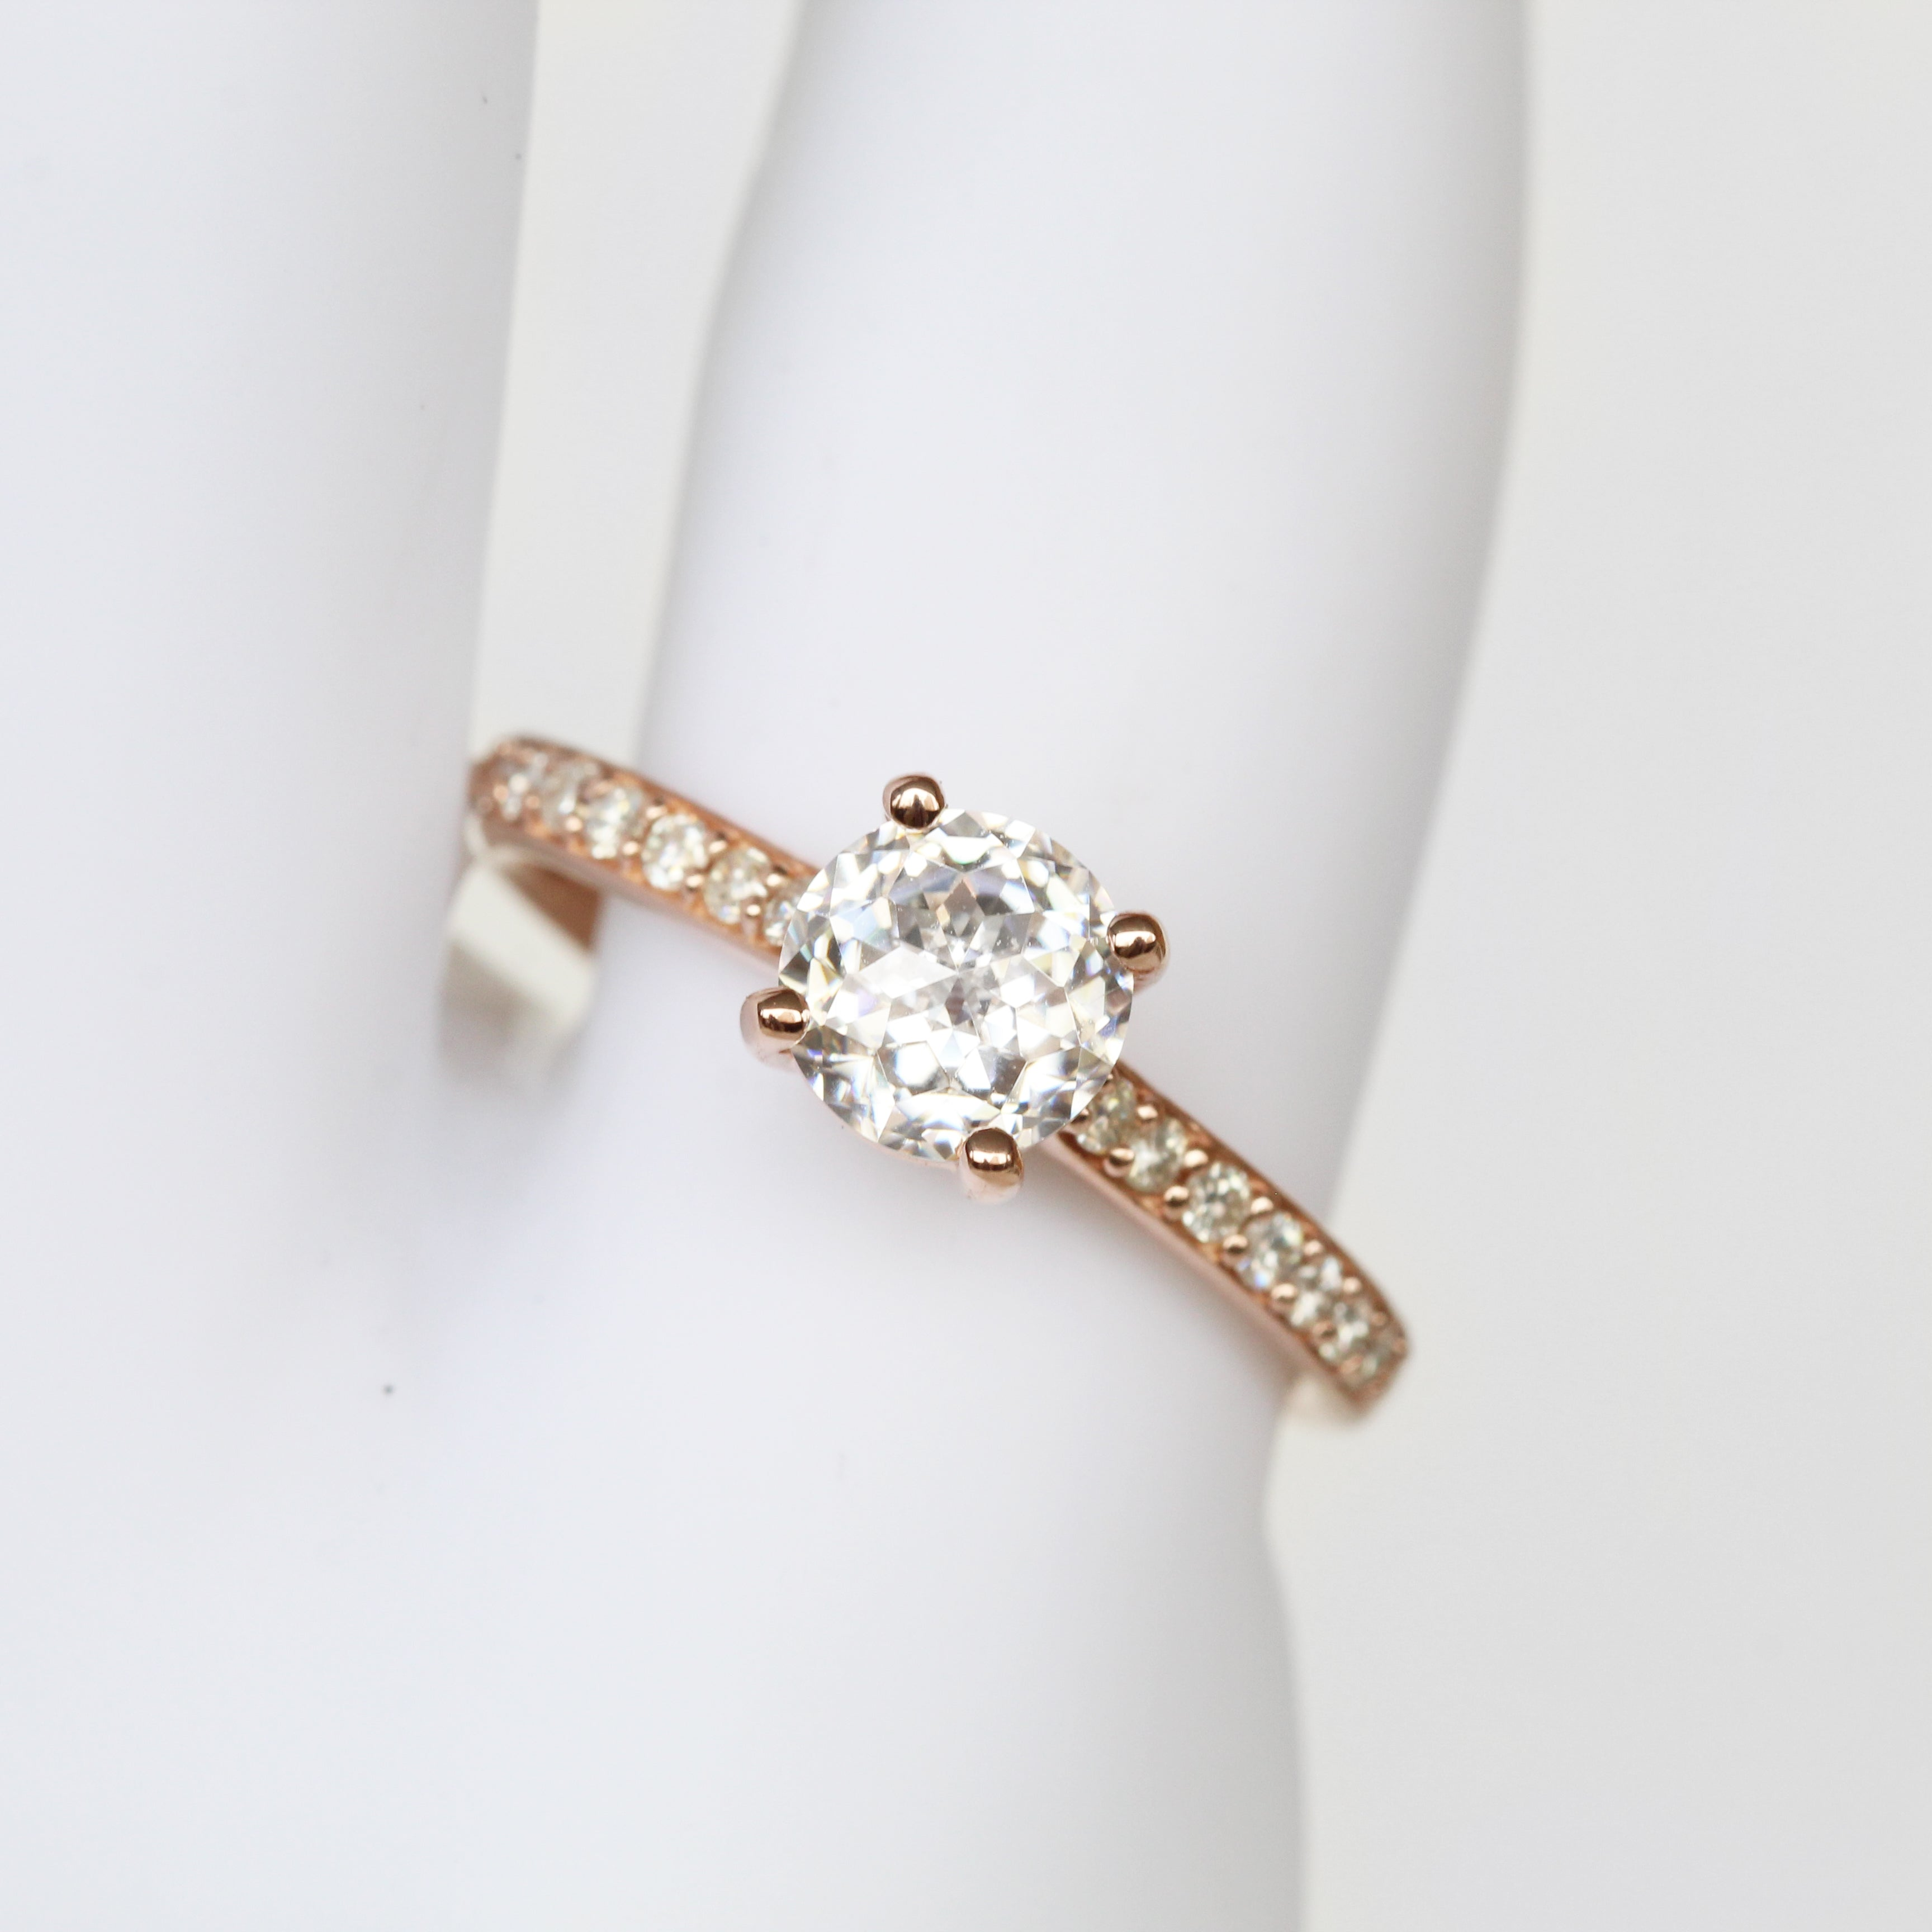 Raine Ring with 1.20ct Jubilee Cut Moissanite in 10k Rose Gold - Ready to Size and Ship - Salt & Pepper Celestial Diamond Engagement Rings and Wedding Bands  by Midwinter Co.